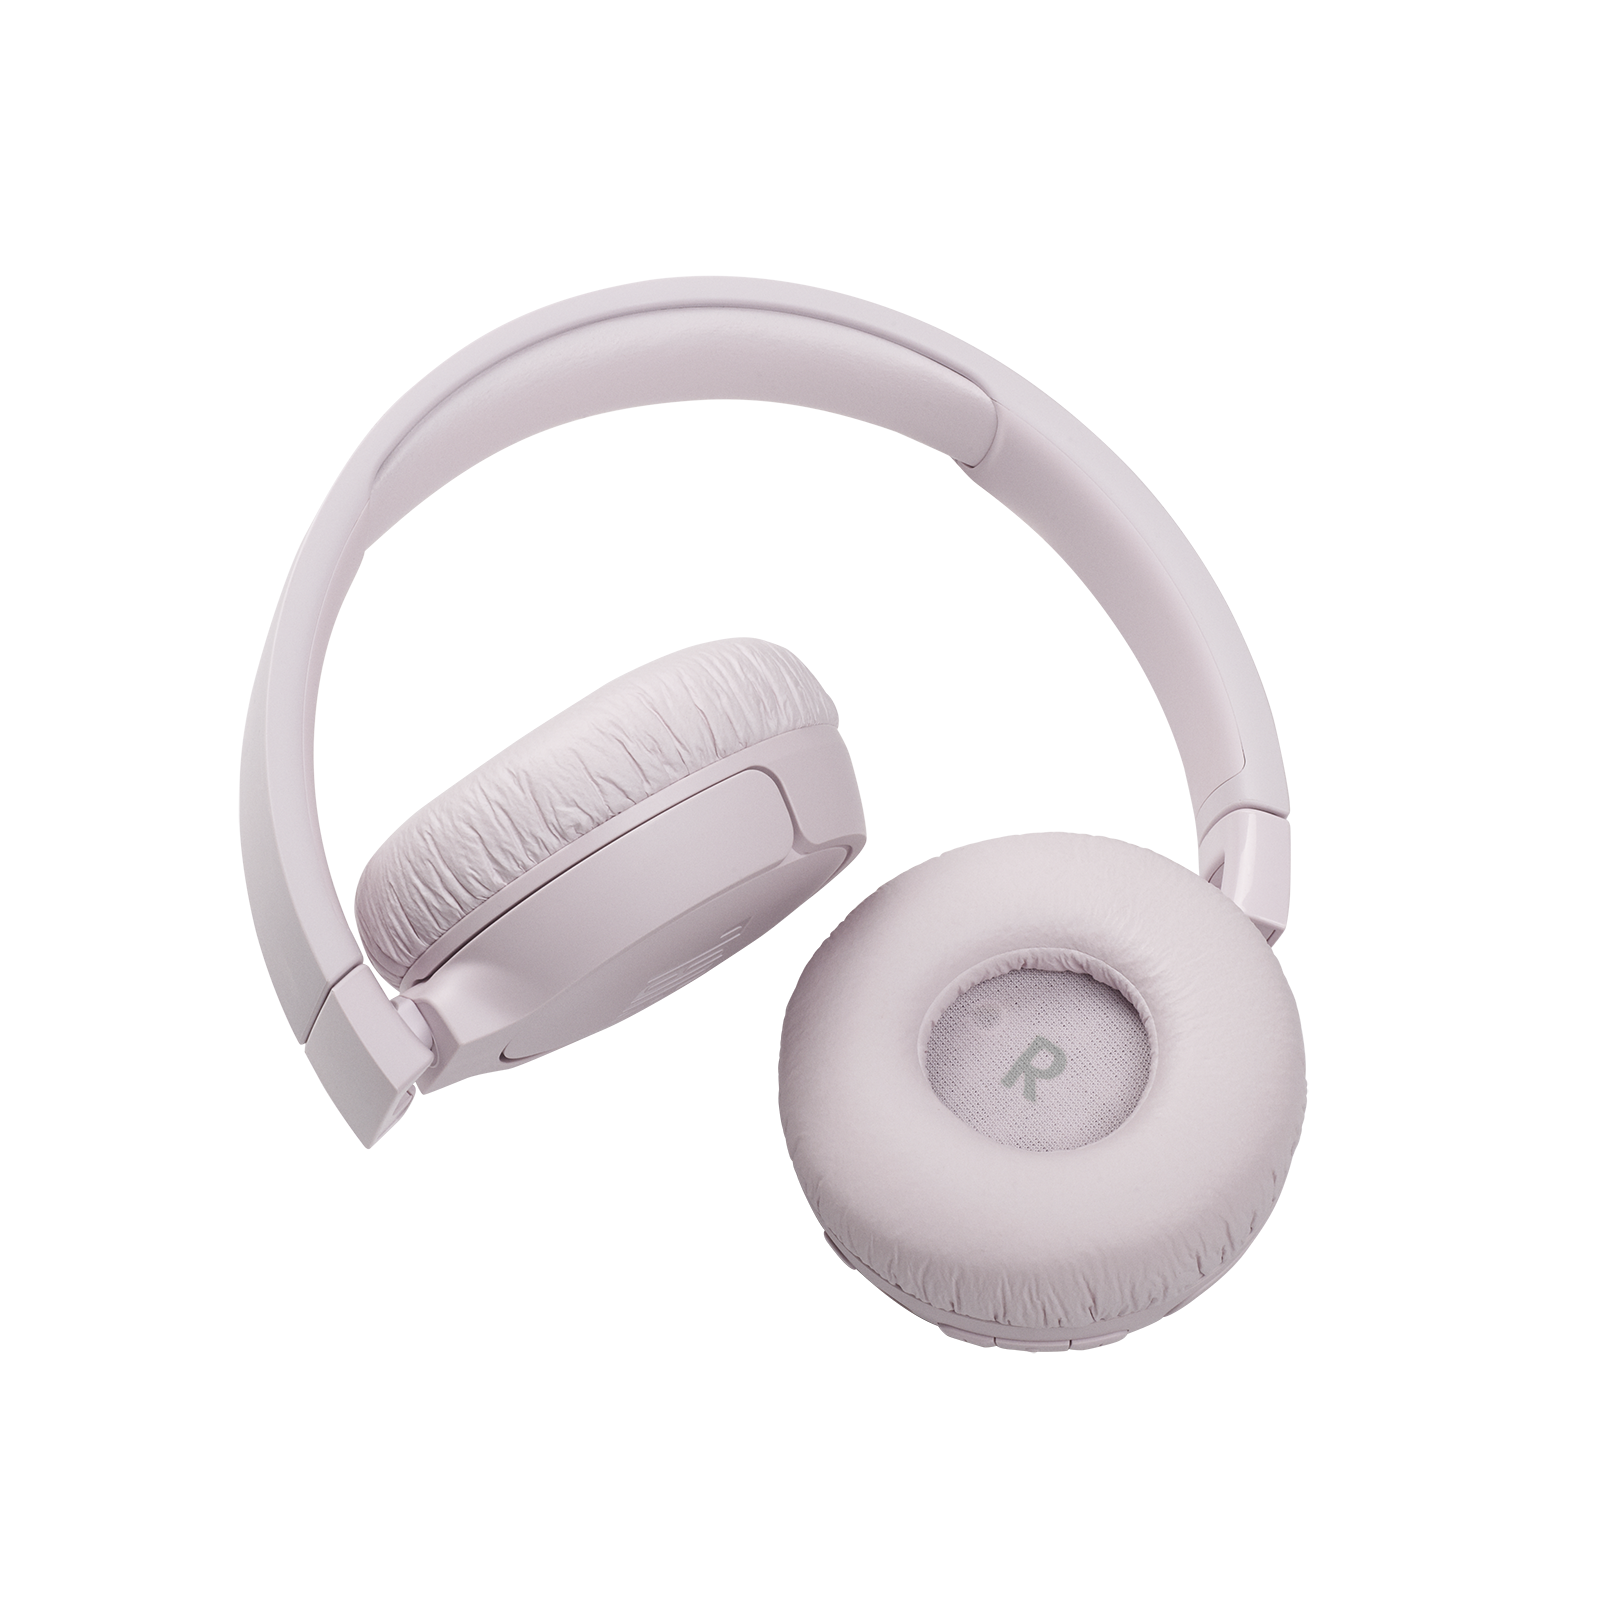 JBL Tune 660NC - Pink - Wireless, on-ear, active noise-cancelling headphones. - Detailshot 5